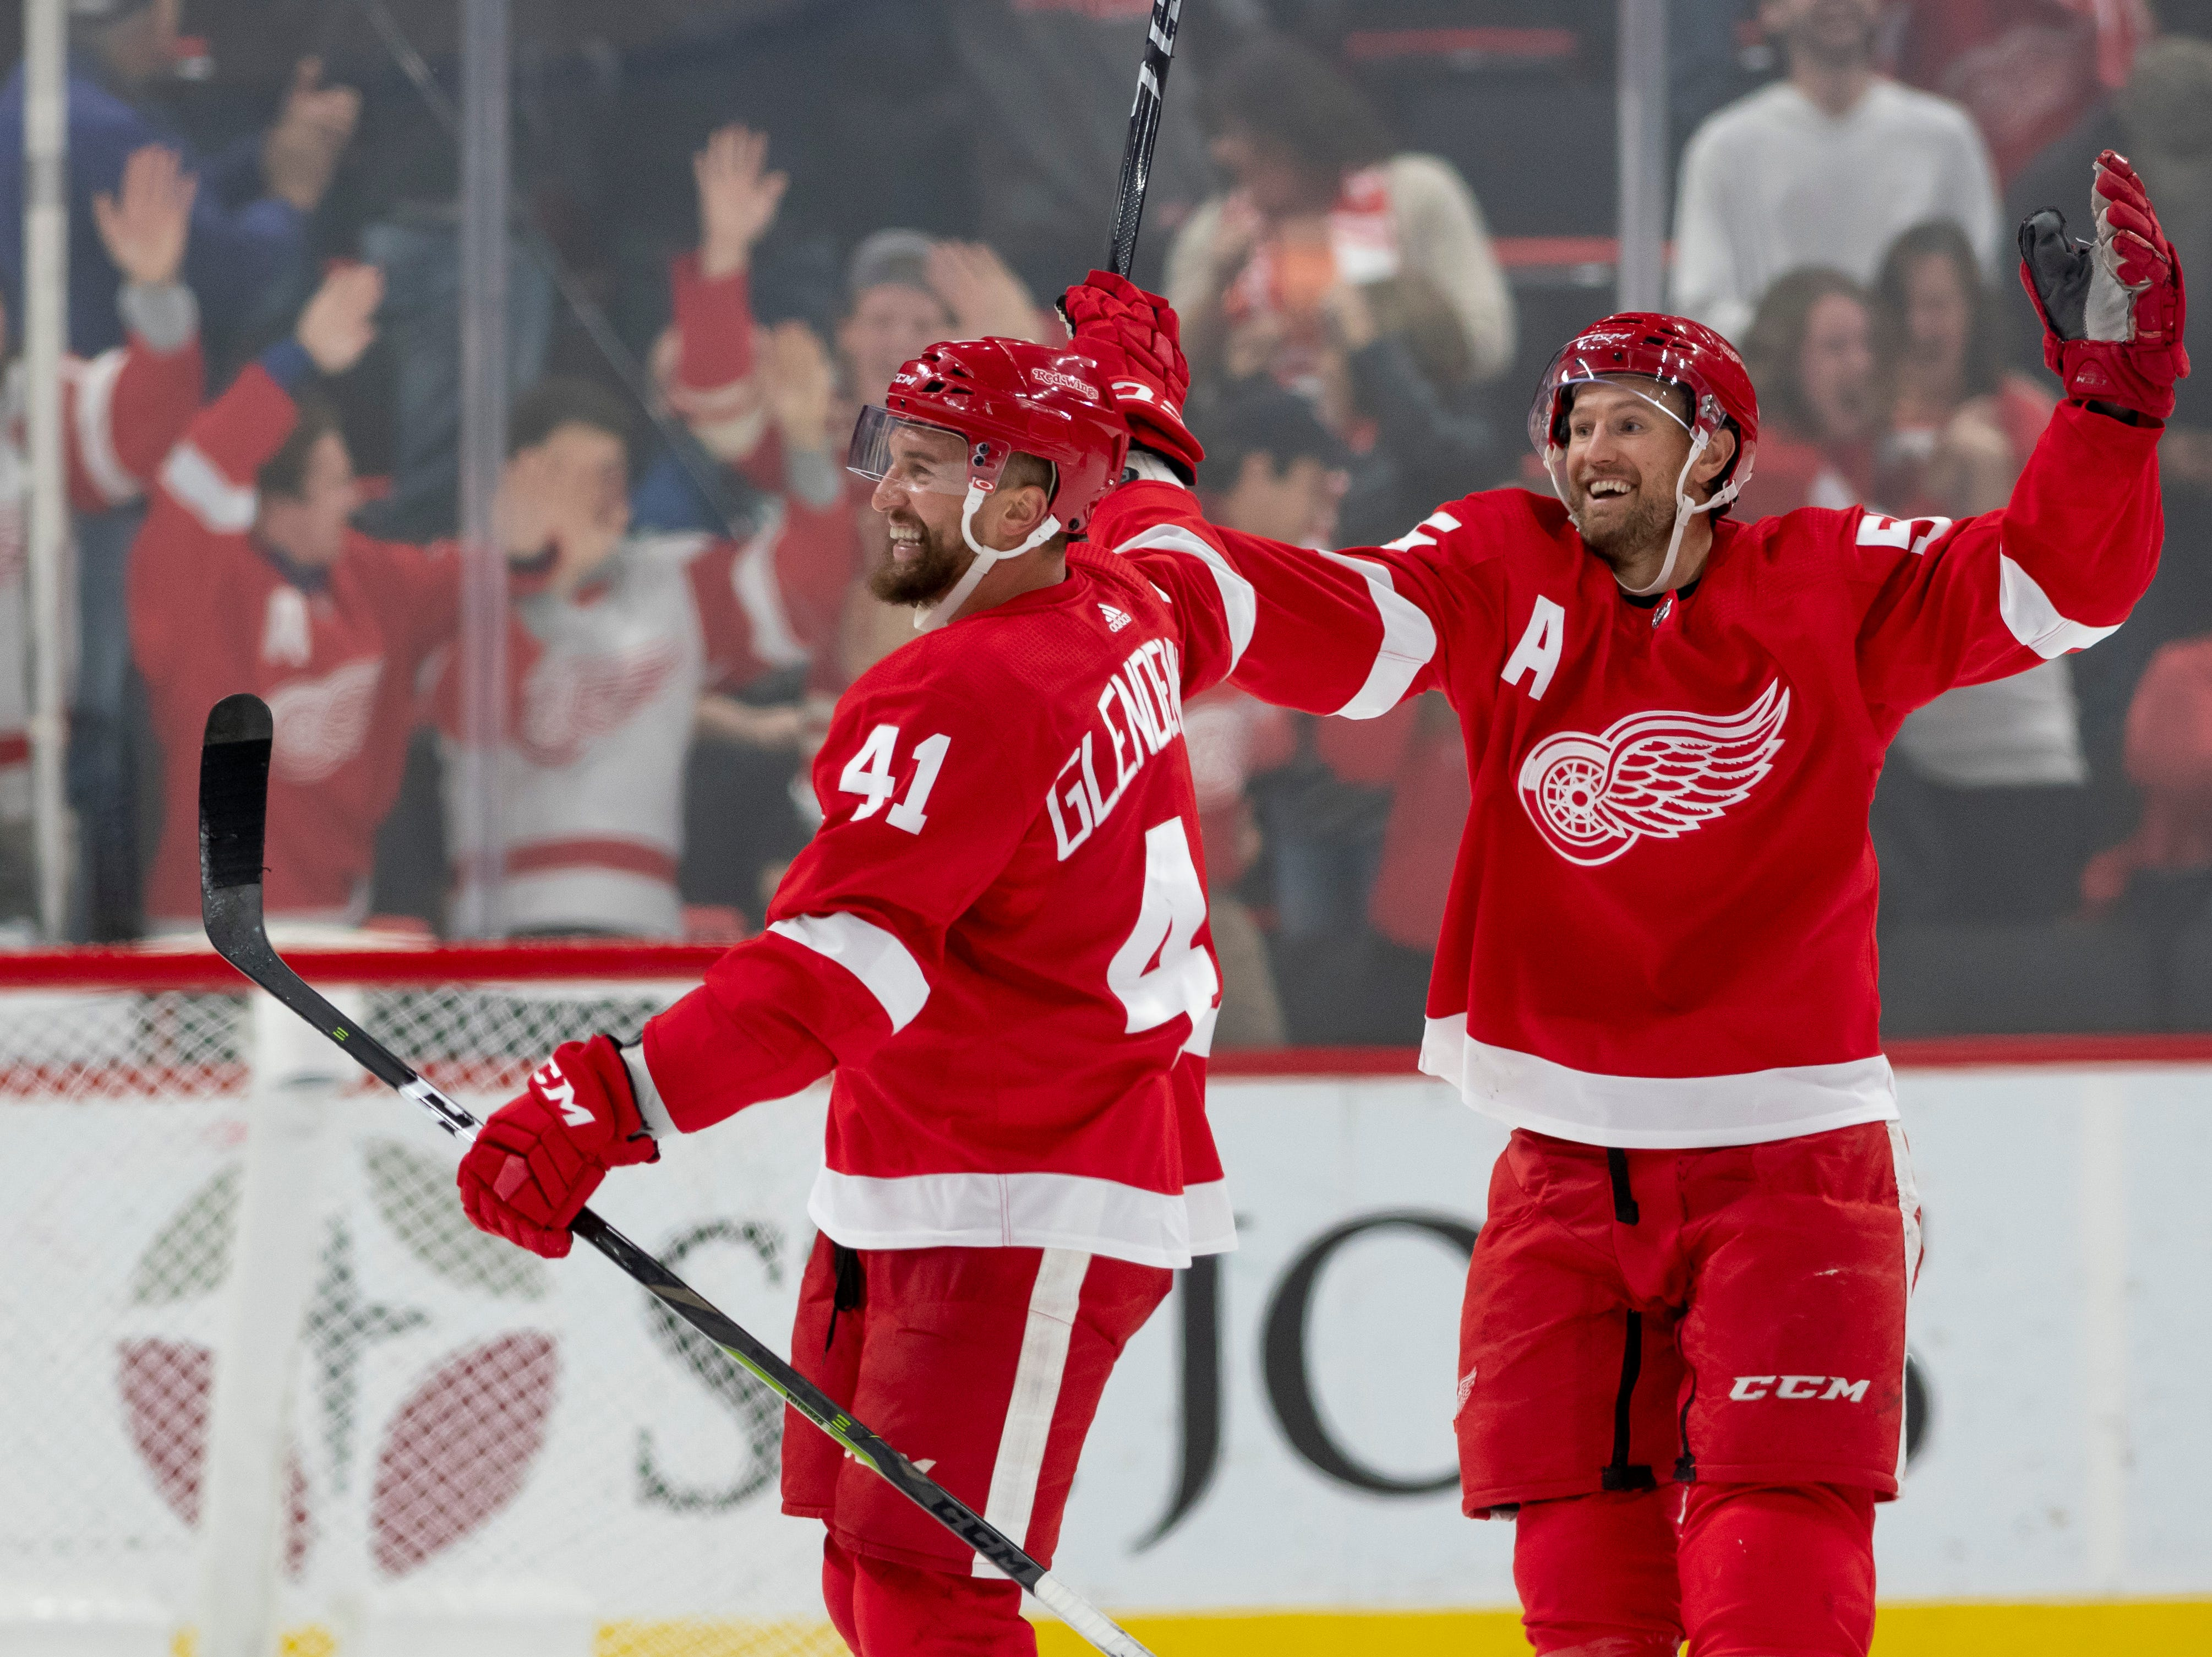 Detroit center Luke Glendening, left, and defenseman Niklas Kronwall celebrate an short-handed empty net goal by defenseman Trevor Daley (not pictured) late in the third period.            Photos are of the Detroit Red Wings vs. the New Jersey Devils, at Little Caesars Arena, in Detroit, November 1, 2018.  (David Guralnick / The Detroit News)